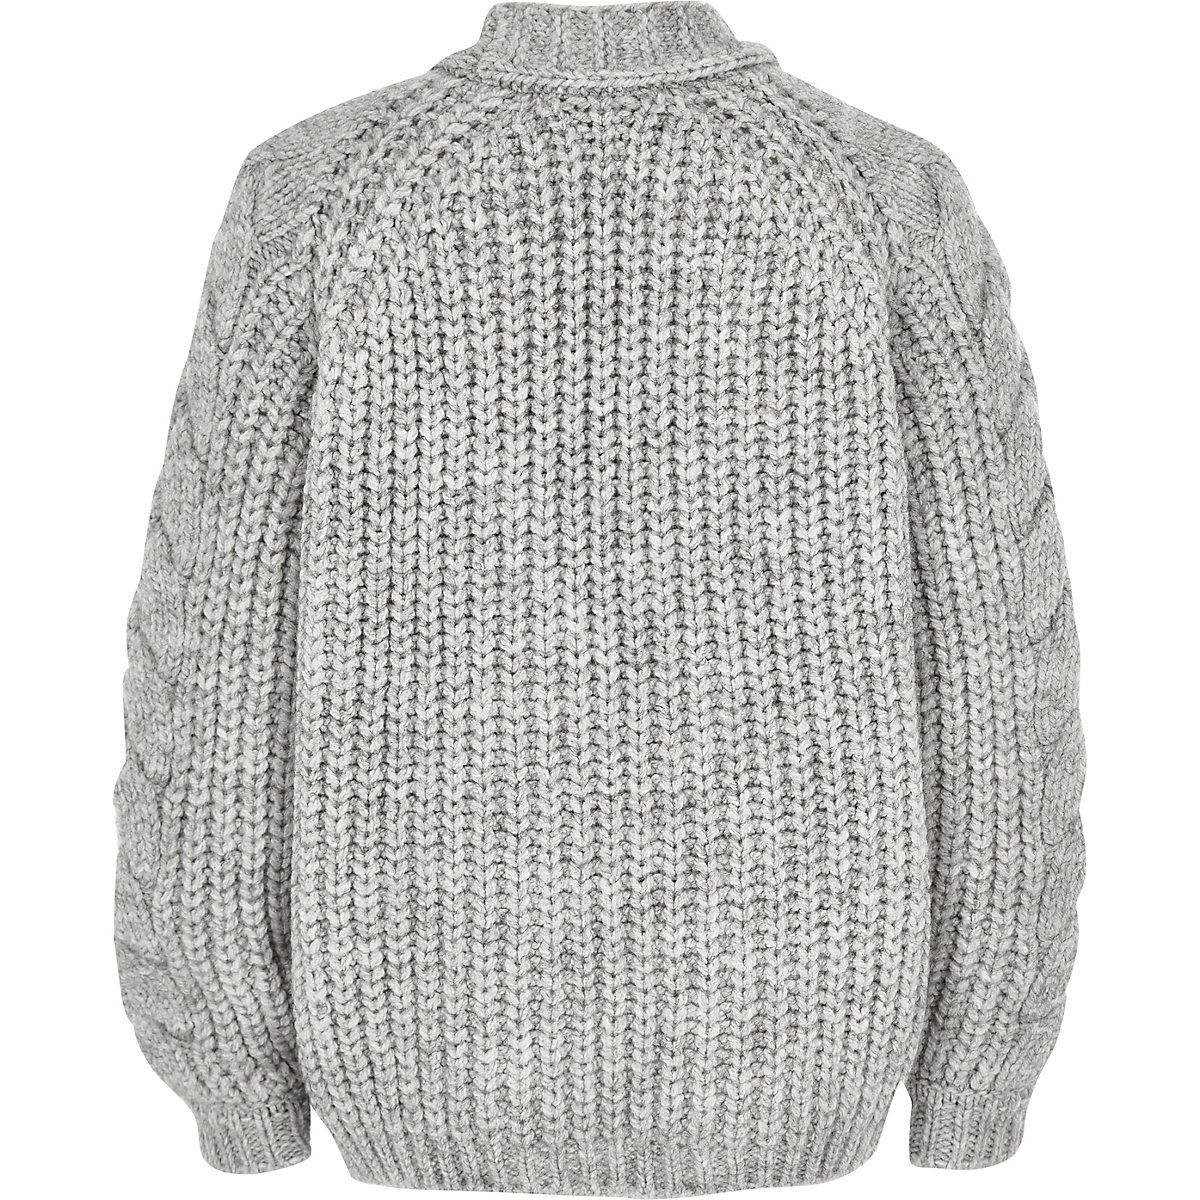 Girls chunky cable knit cardigan - Cardigans / Jumpers - Tops - girls